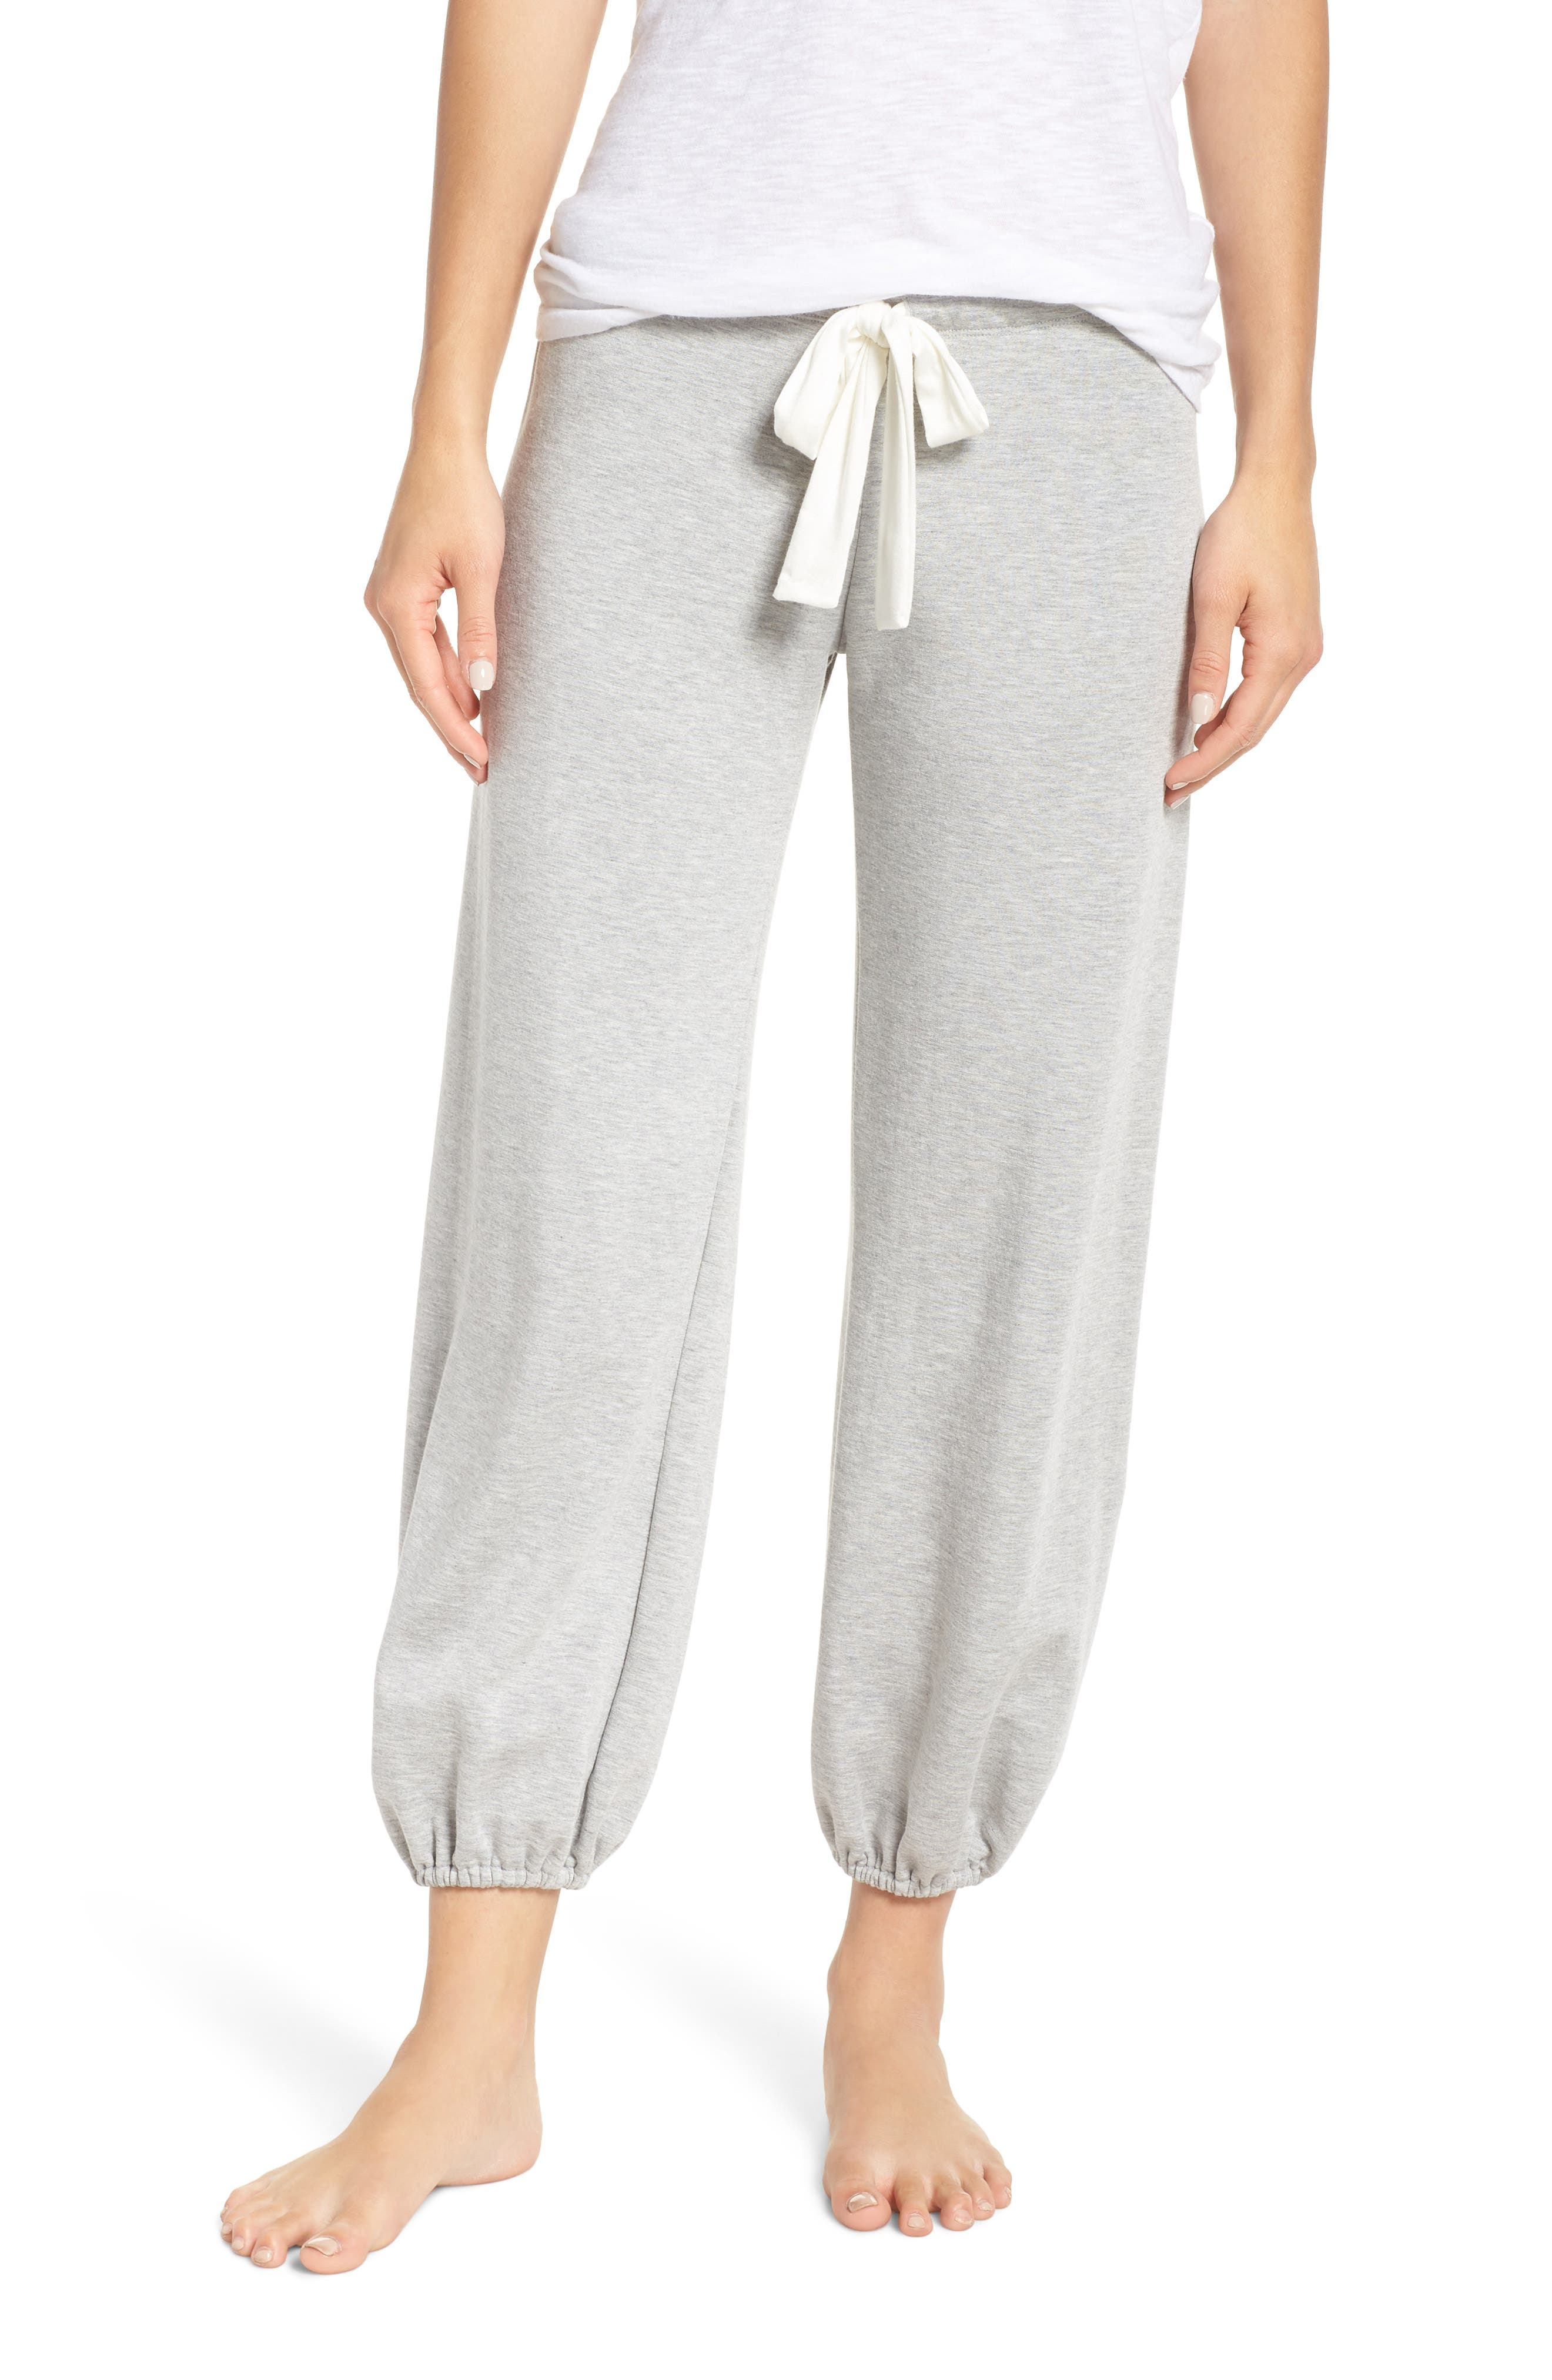 Winter Heather Cropped Pants in Heather Grey